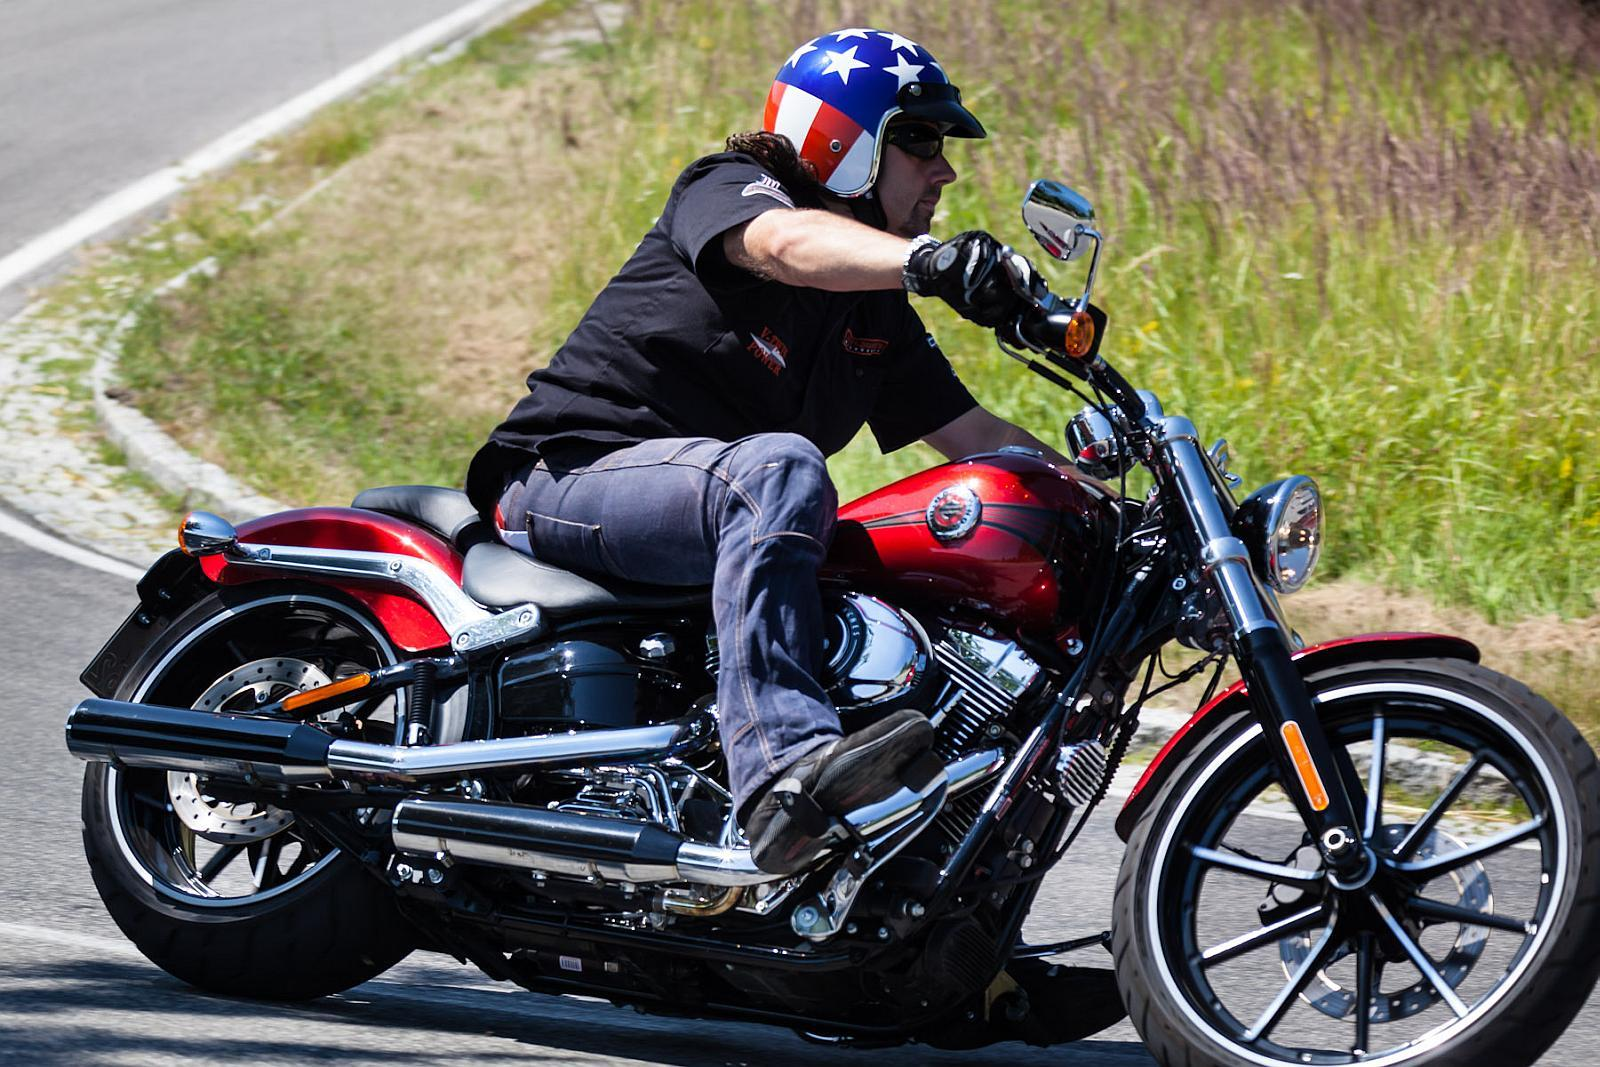 2013 Harley-Davidson Touring Motorcycles Prices and Values